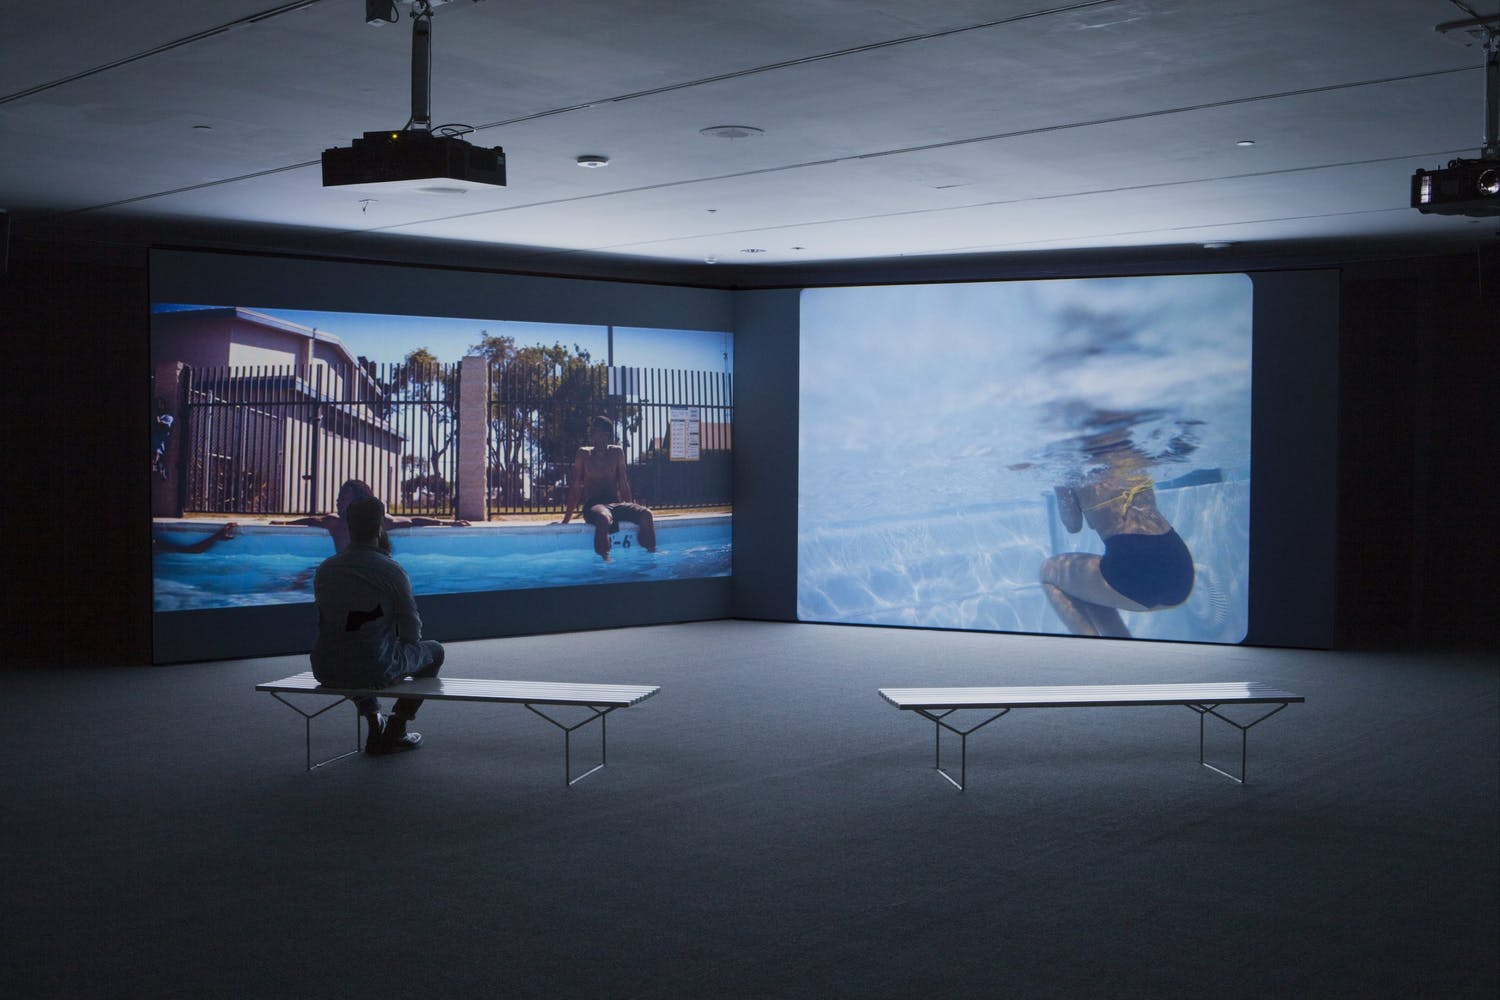 Image of gallery with two projections on dark wall and benches and visitor in foreground